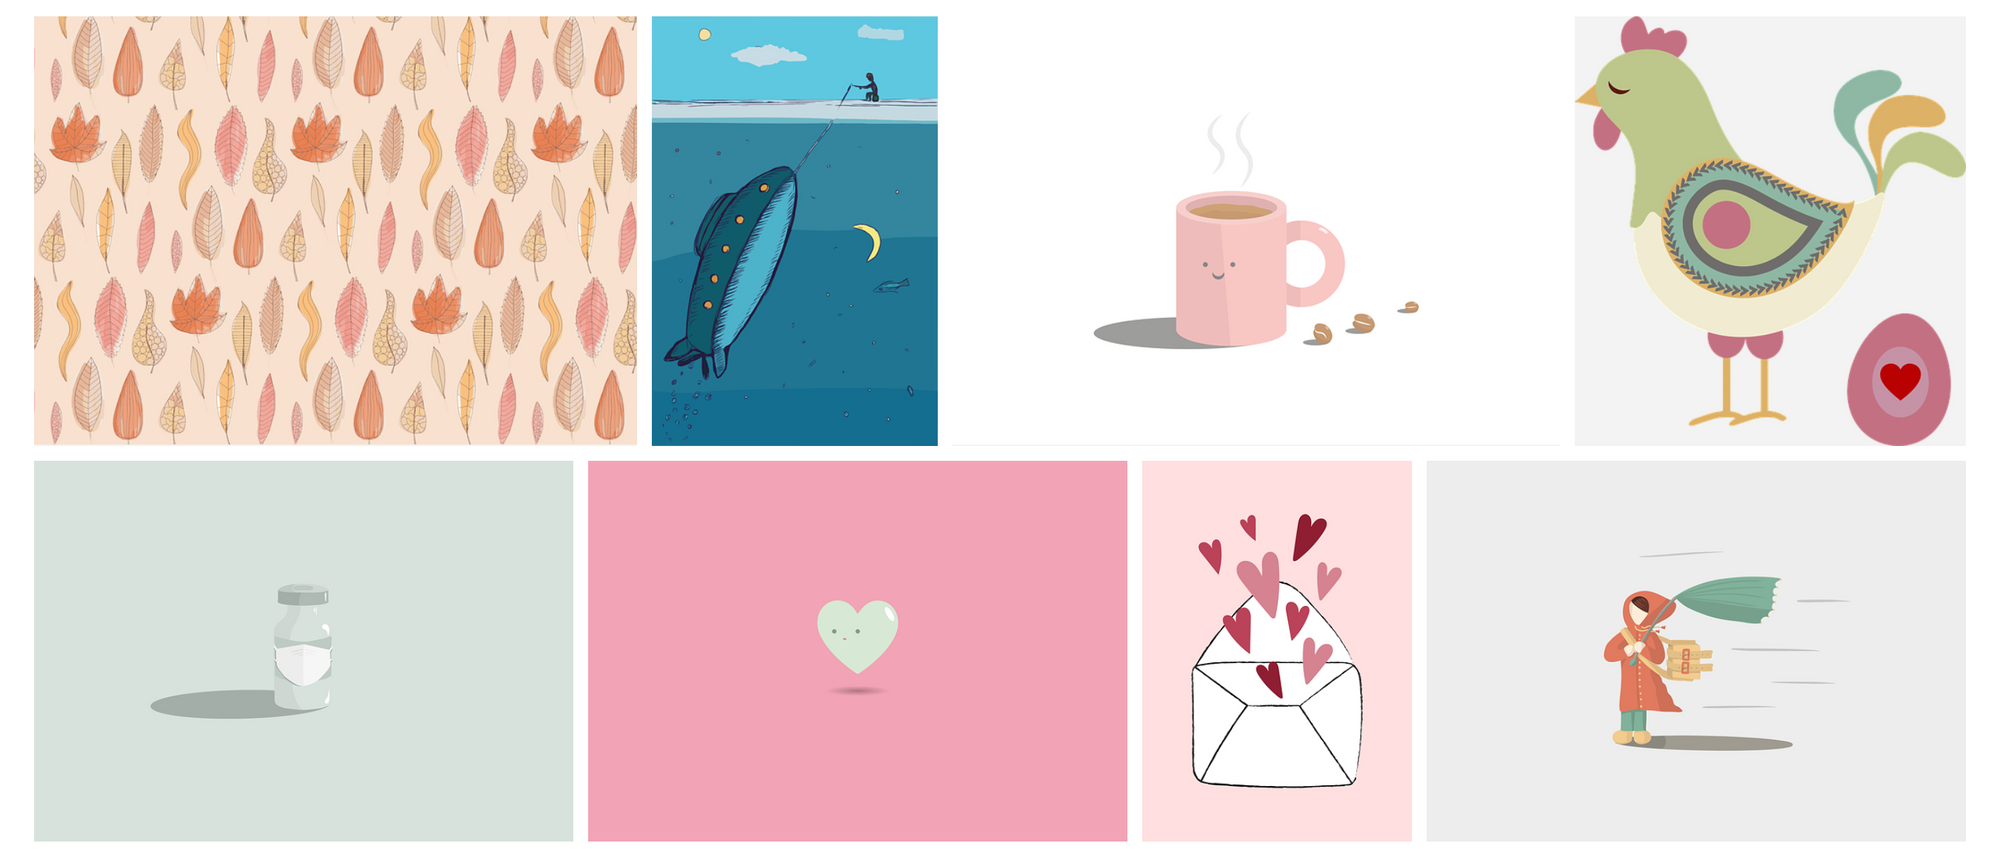 A screenshot featuring several vector illustrations in Pixabay.